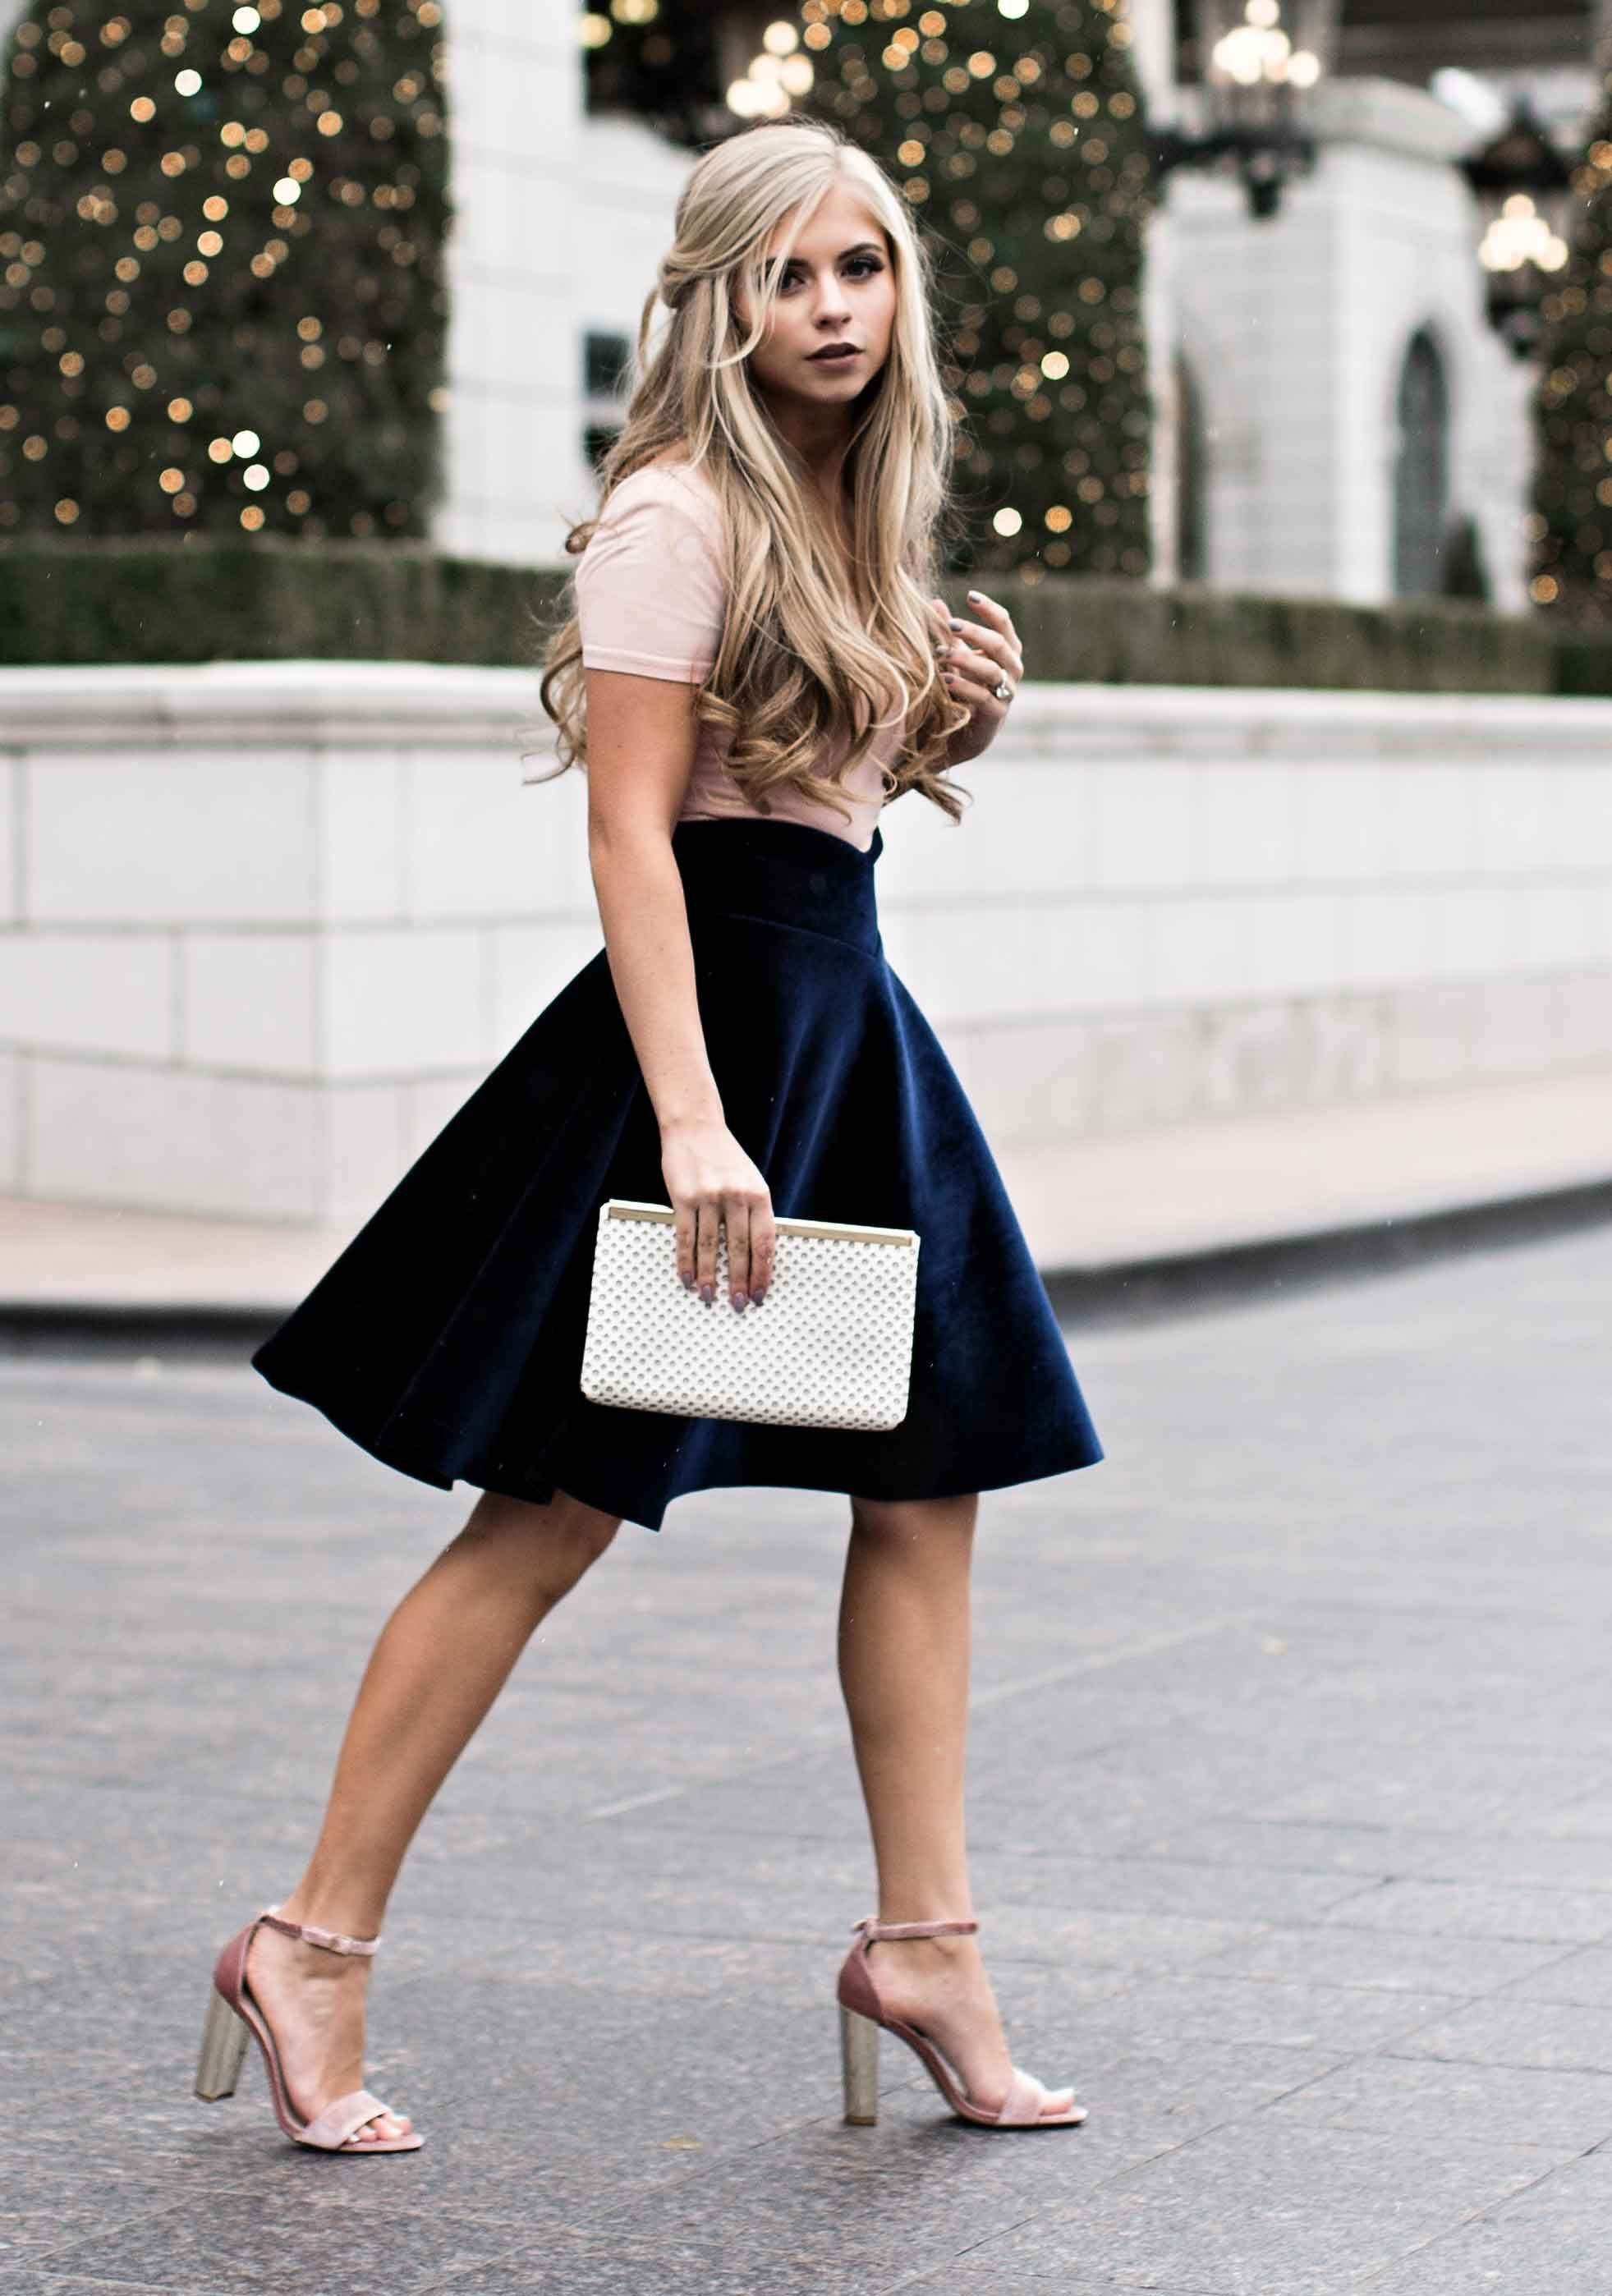 21 Stylish Outfit Ideas for Christmas